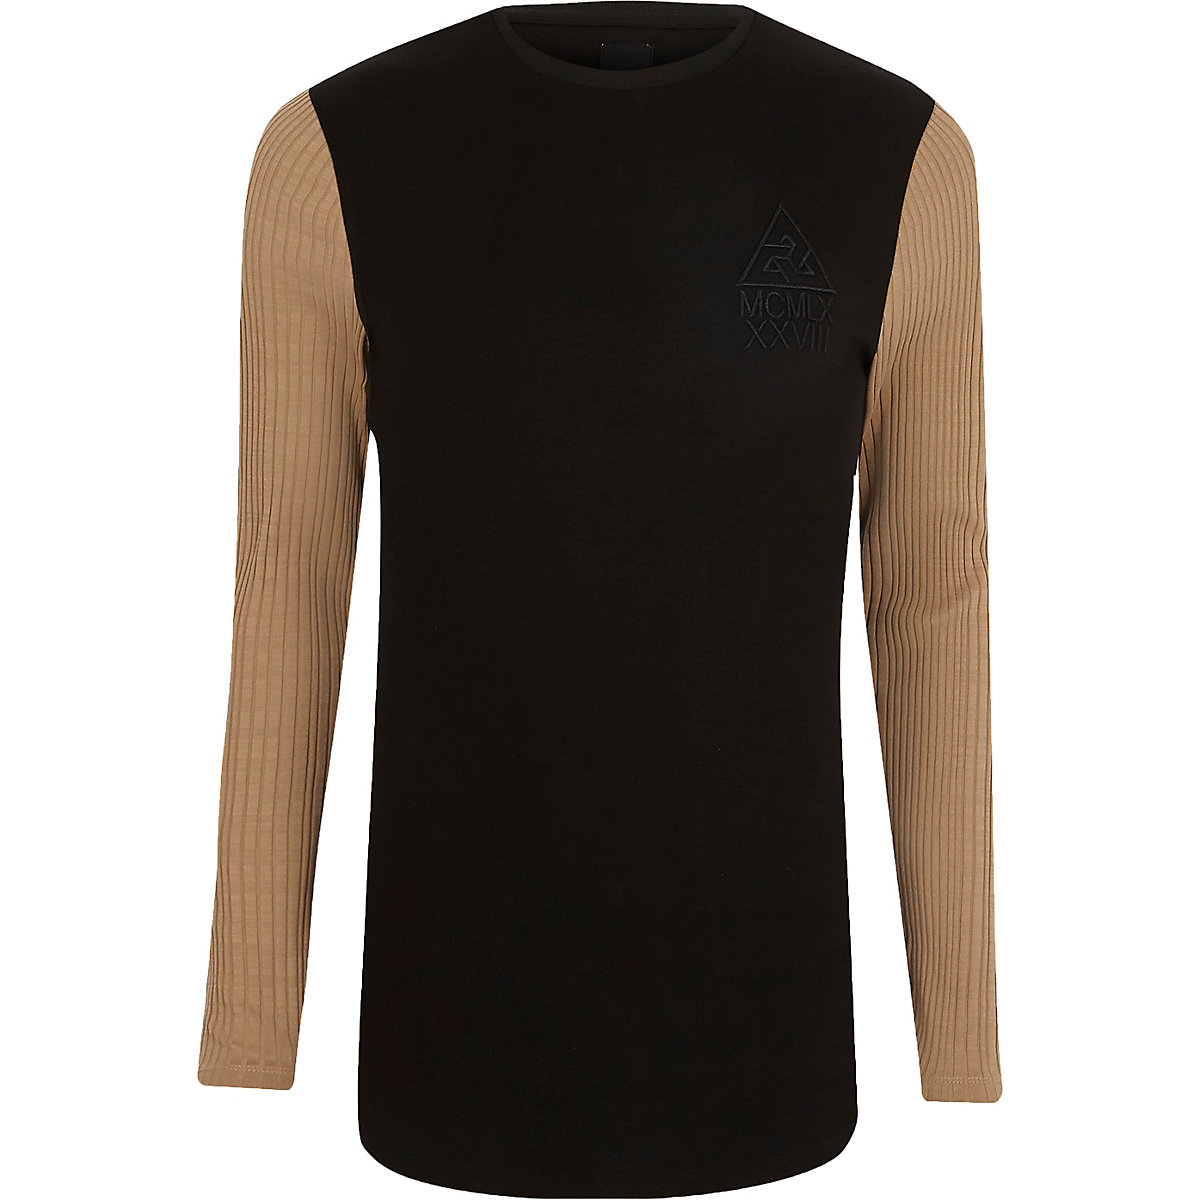 Brown block chunky rib sleeve muscle fit top